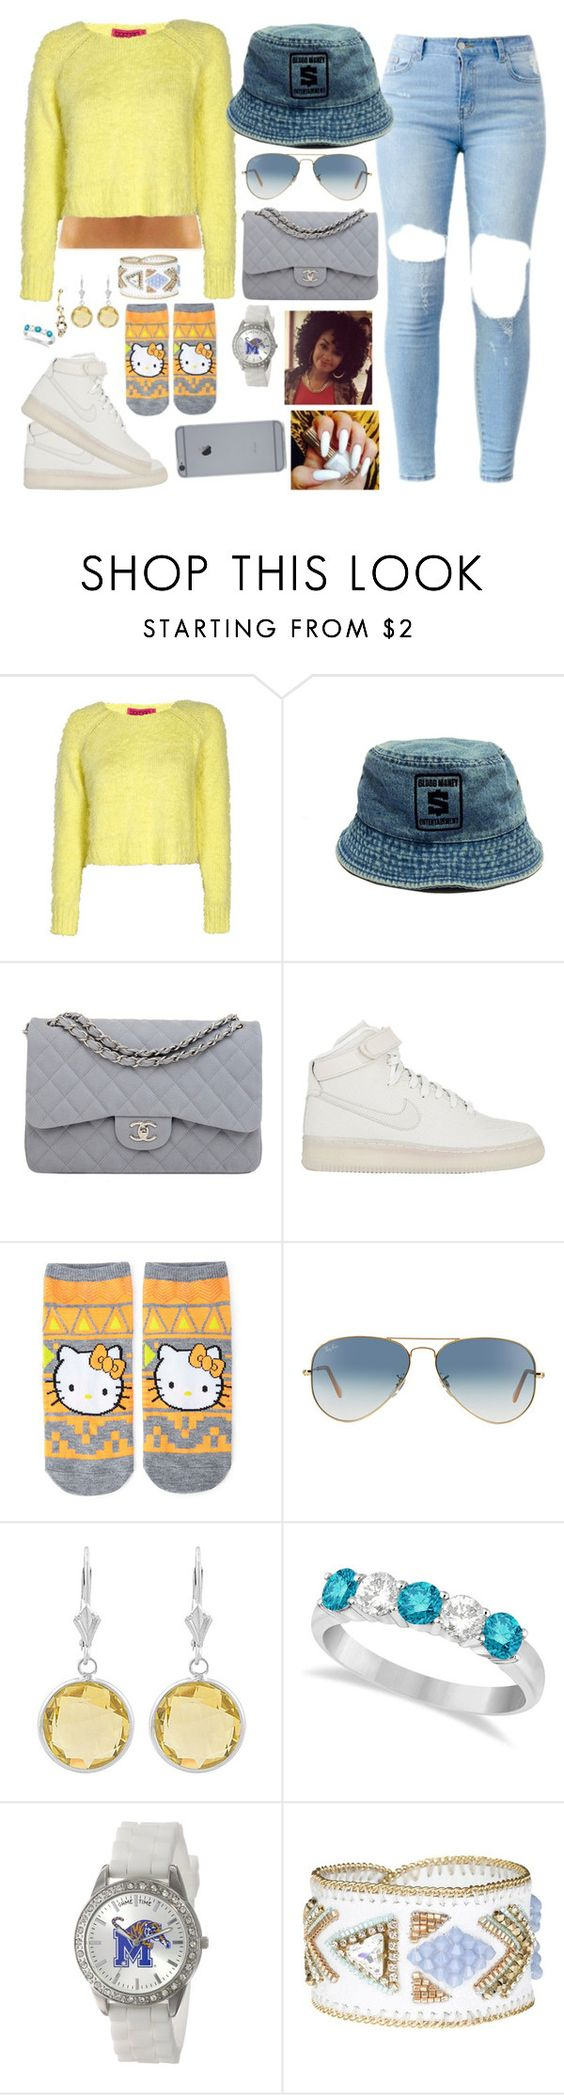 """Leiah is gonna be with us ! #SoHappy"" by cissylion ❤ liked on Polyvore featuring Boohoo, Chanel, NIKE, Forever 21, Ray-Ban, Fremada, Allurez, Game Time and BUBA"